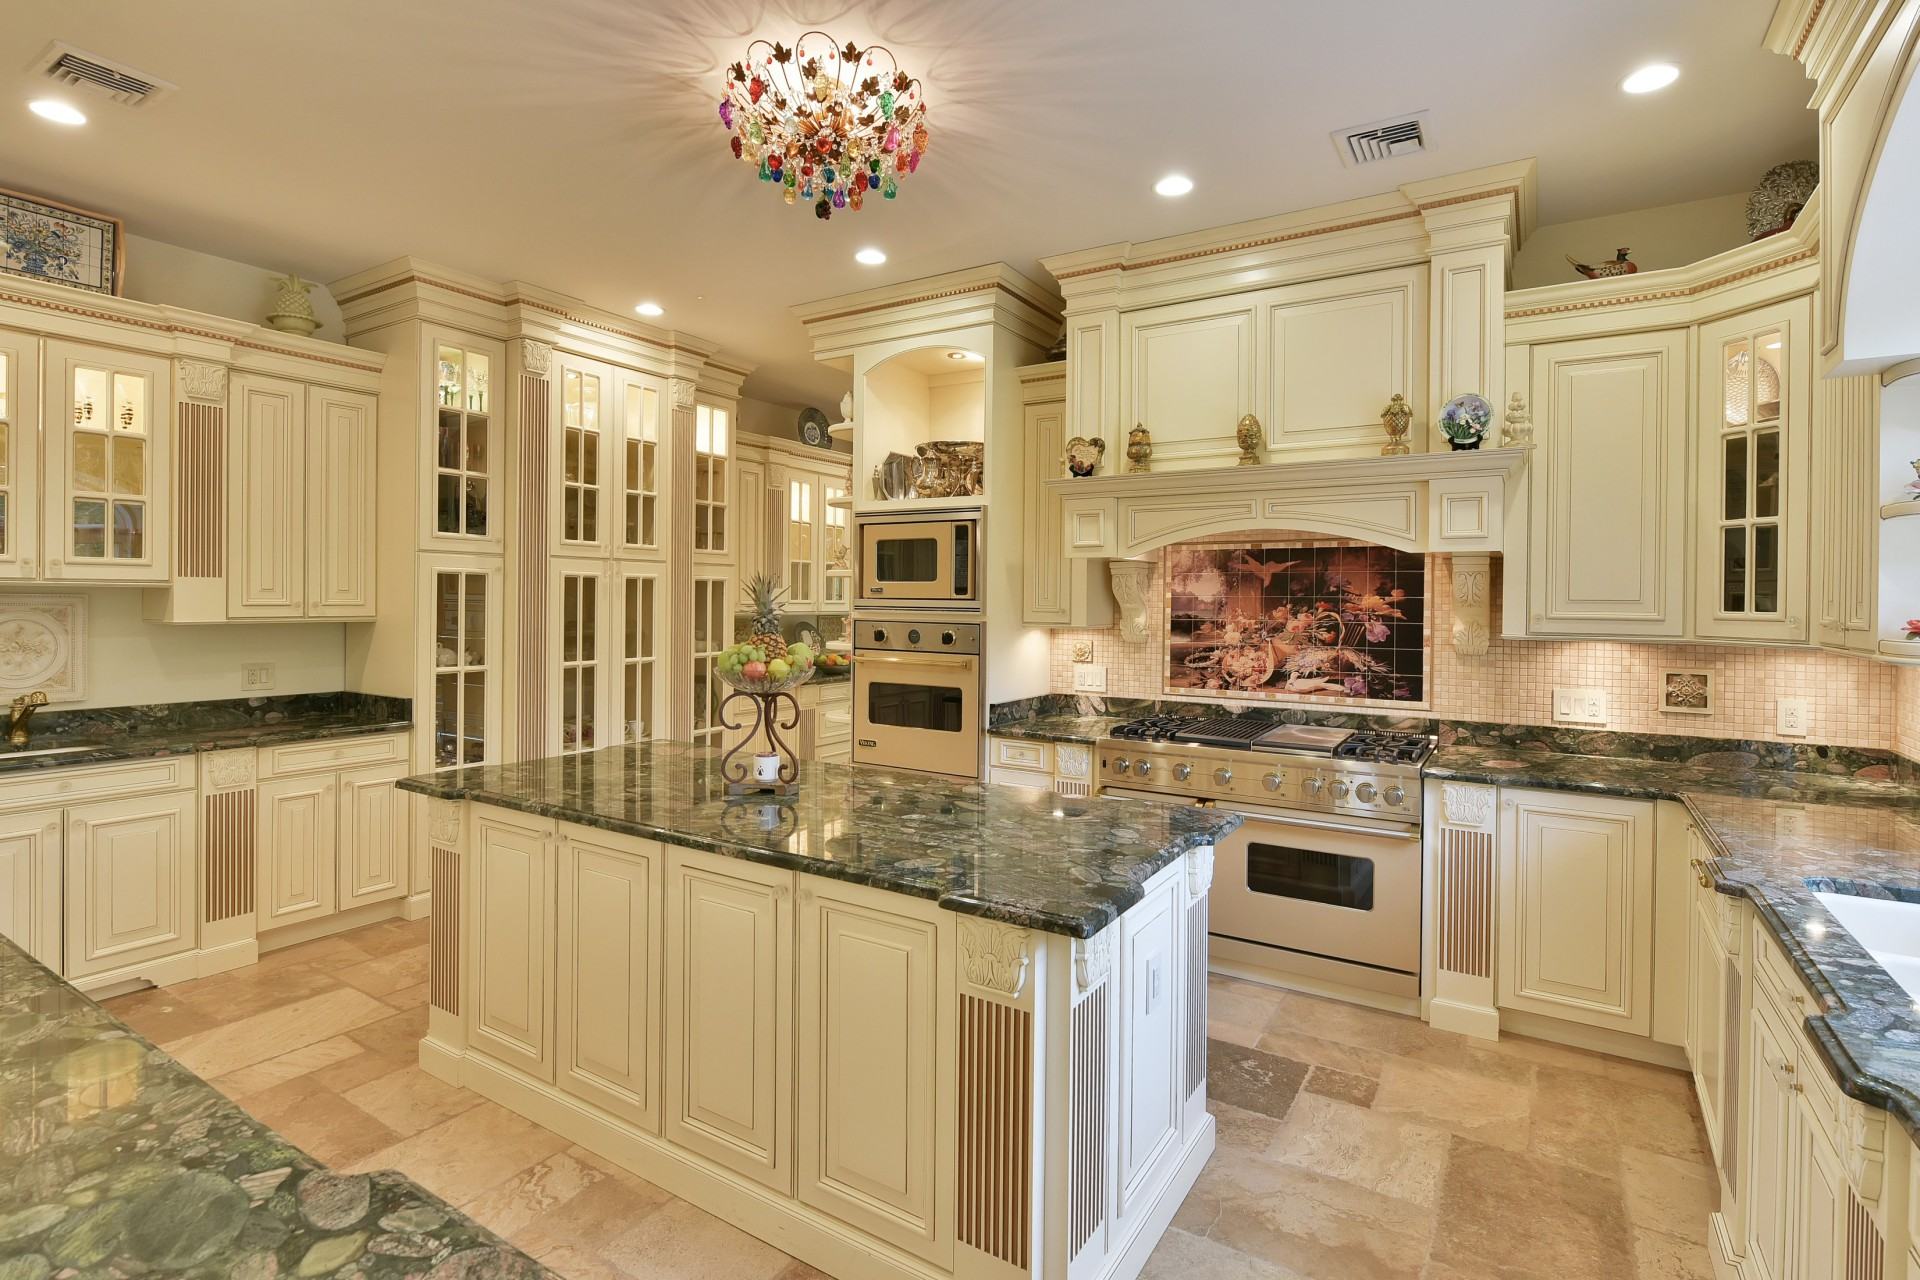 Brilliant Bergen County Dream Homes Luxury Homes For Sale From 3M To 4M Largest Home Design Picture Inspirations Pitcheantrous